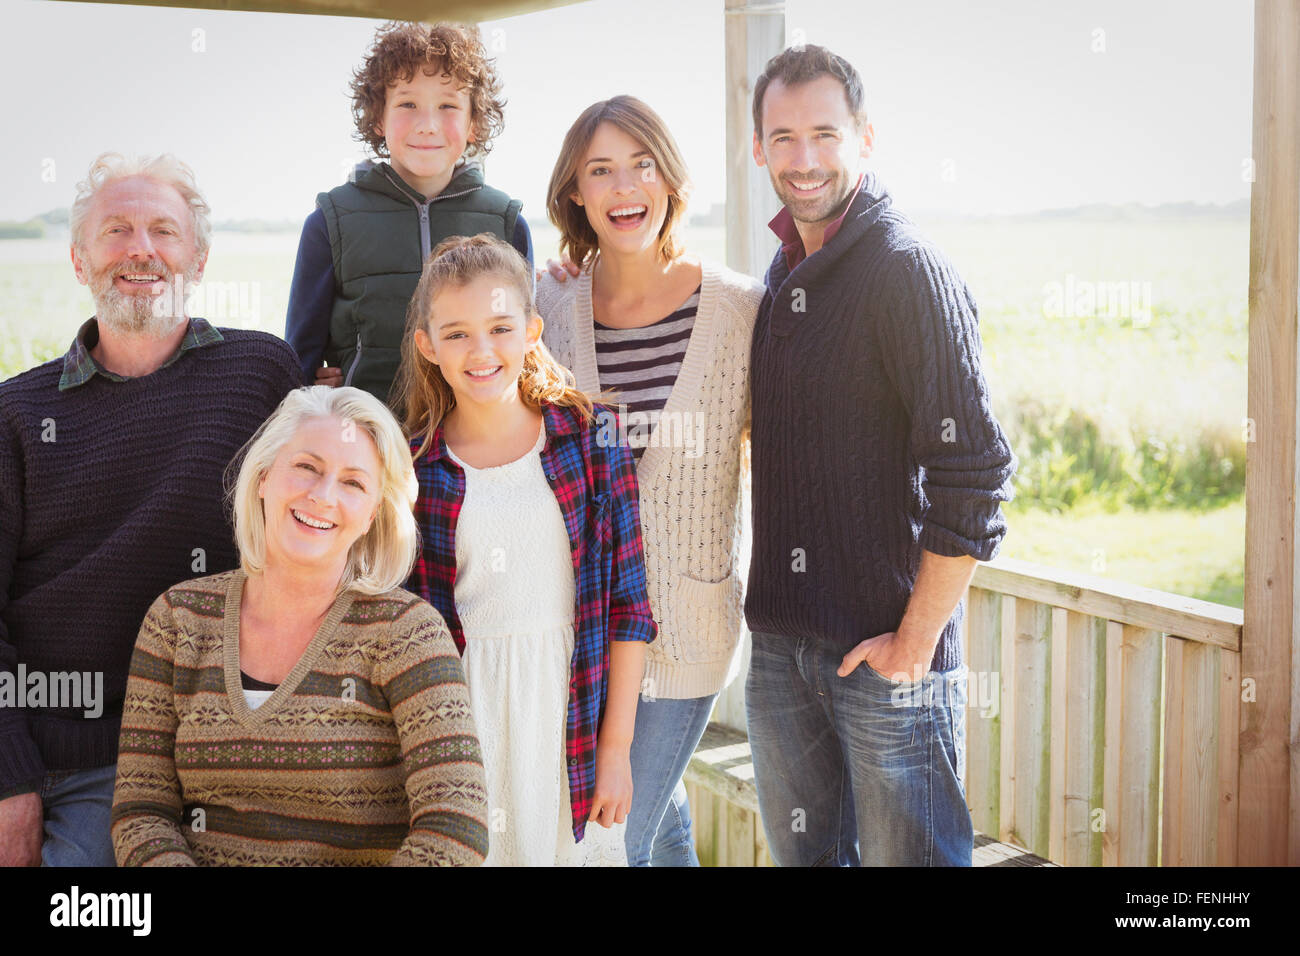 Portrait smiling multi-generation family on sunny porch - Stock Image